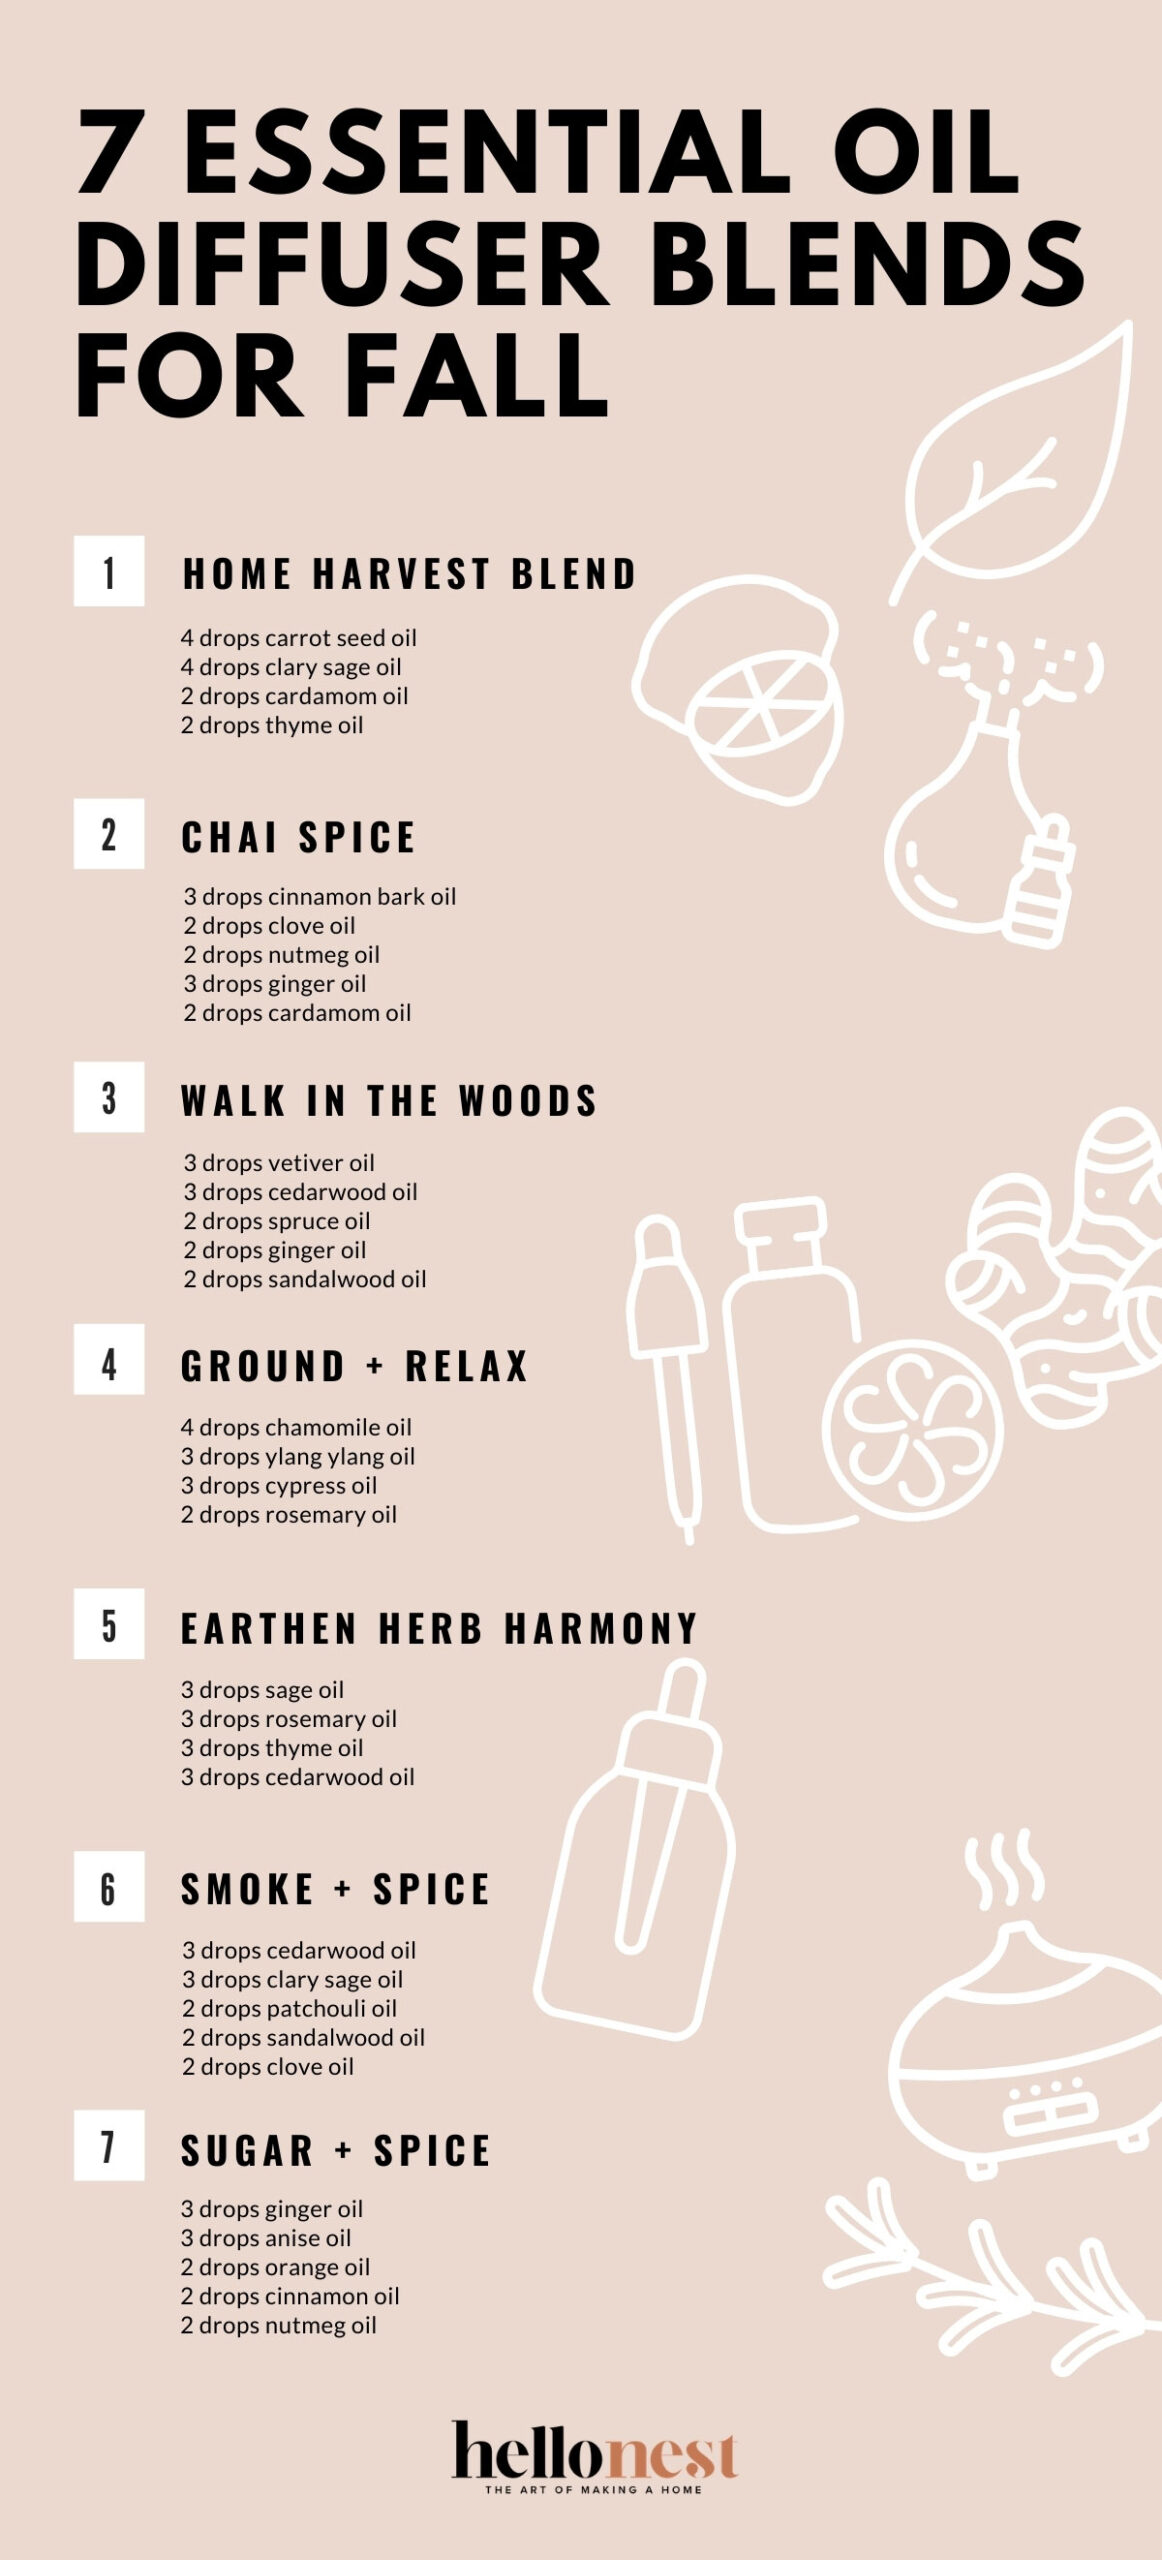 7 Essentil Oil Diffuser Blends for Fall - HelloNest.co